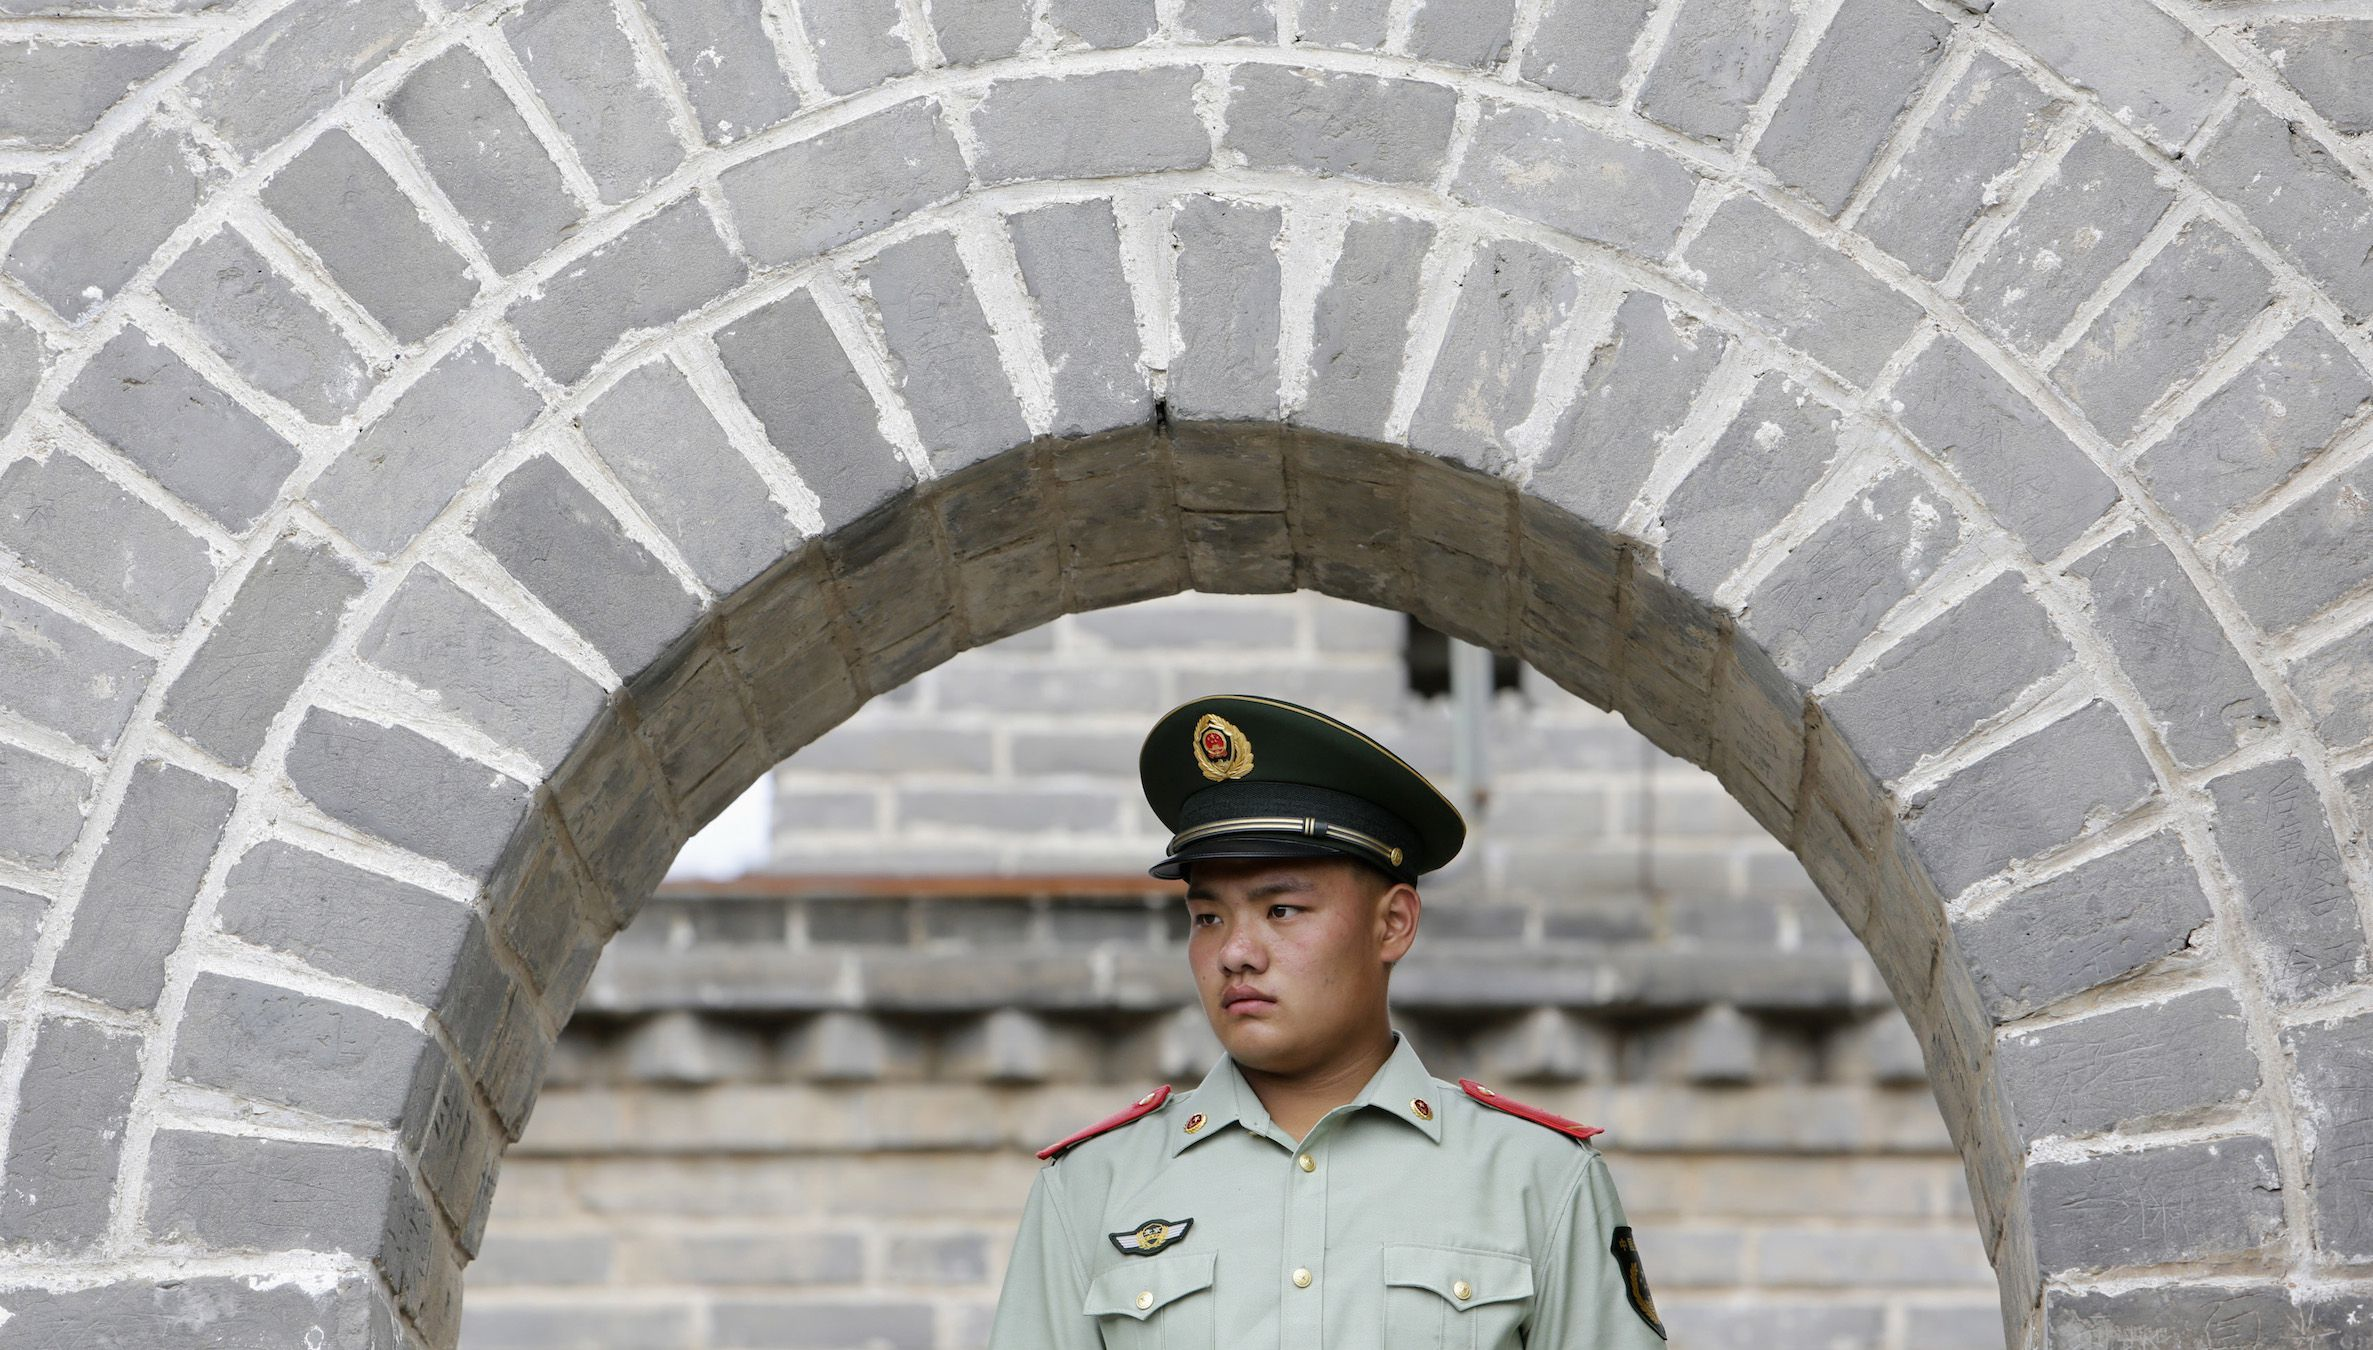 A paramilitary police officer stands guard before U.S. Secretary of State John Kerry and U.S. Treasury Secretary Jacob Lew arrive to tour the Badaling section of the Great Wall, on the outskirts of Beijing, July 8, 2014. The United States will press China to resume cooperation on fighting cyber espionage to ensure an orderly cyber environment, a senior U.S. official said on Tuesday ahead of annual talks between the world's two largest economies this week. REUTERS/Jason Lee (CHINA - Tags: POLITICS BUSINESS MILITARY) - RTR3XKRU